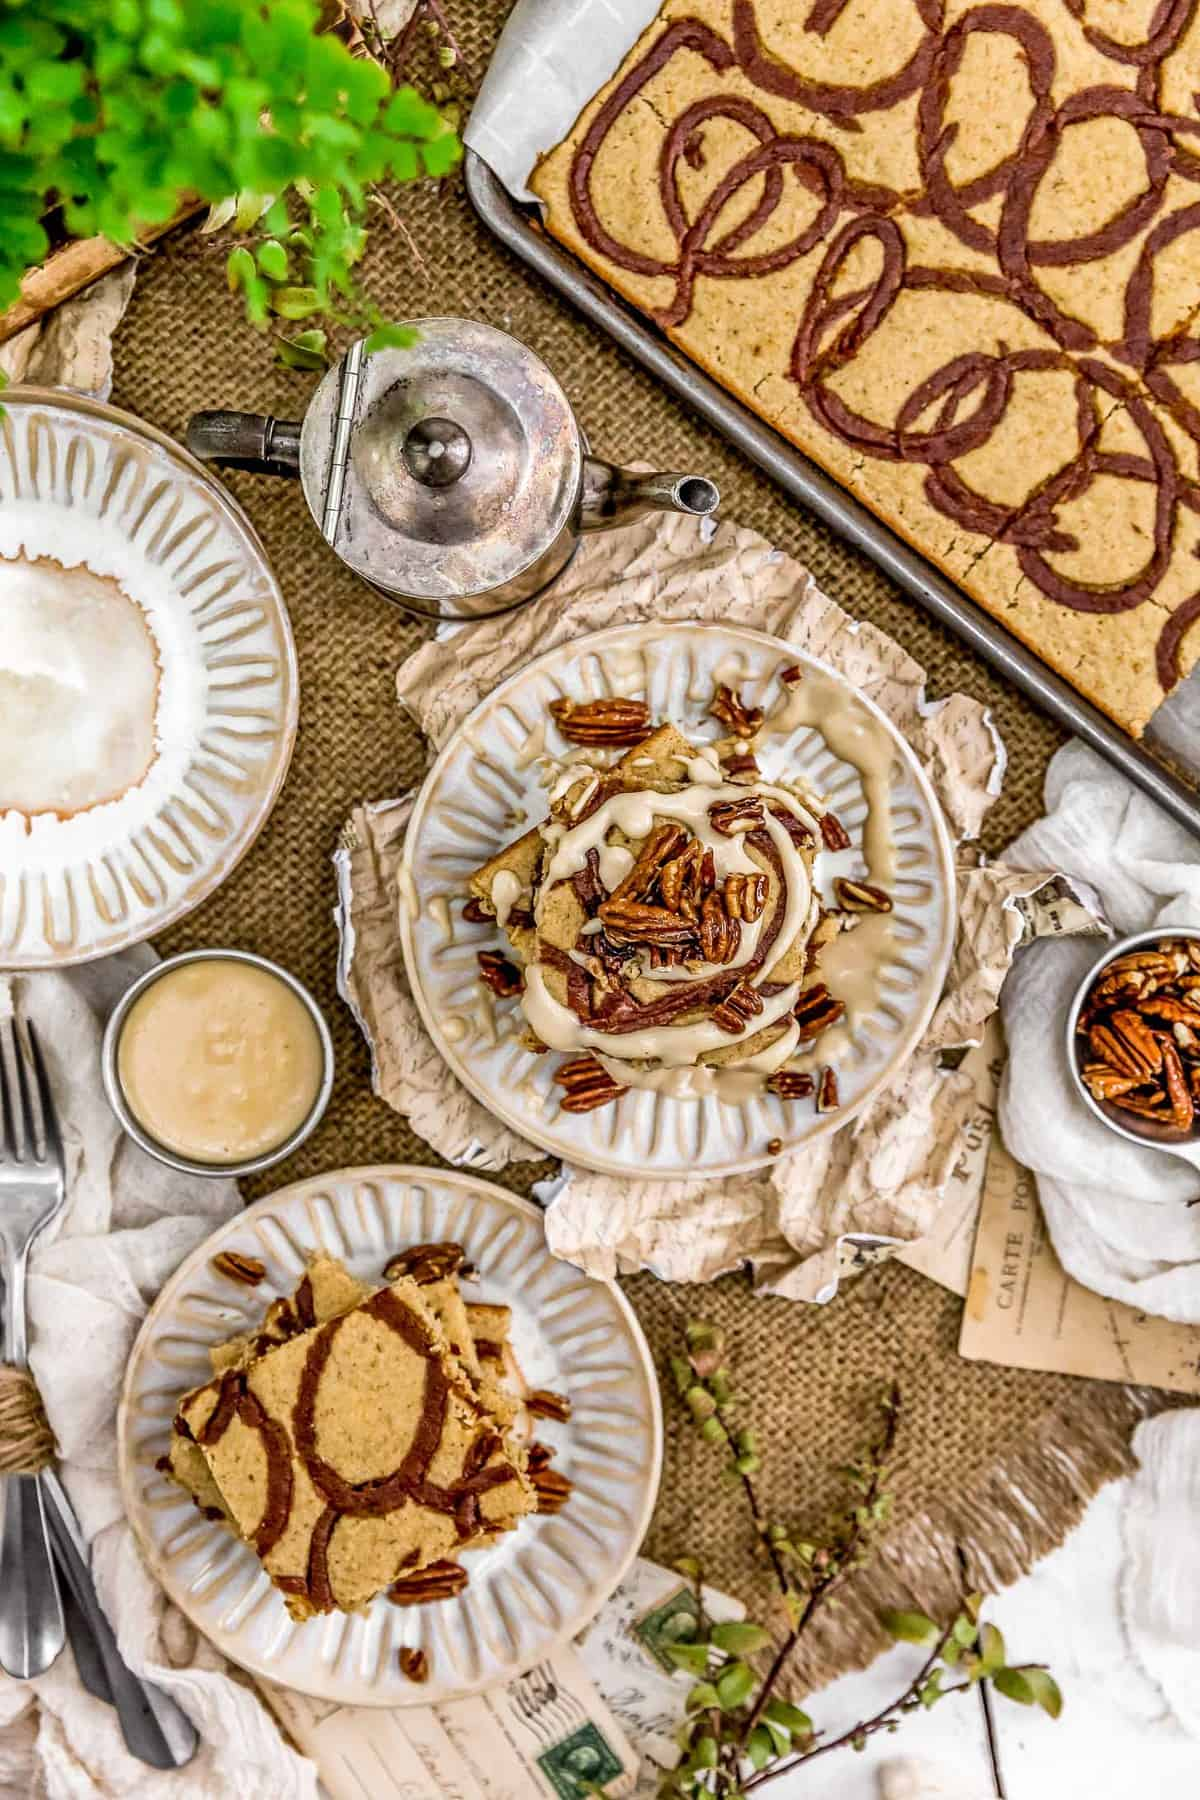 Tablescape of Vegan Cinnamon Bun Sheet Pan Pancakes